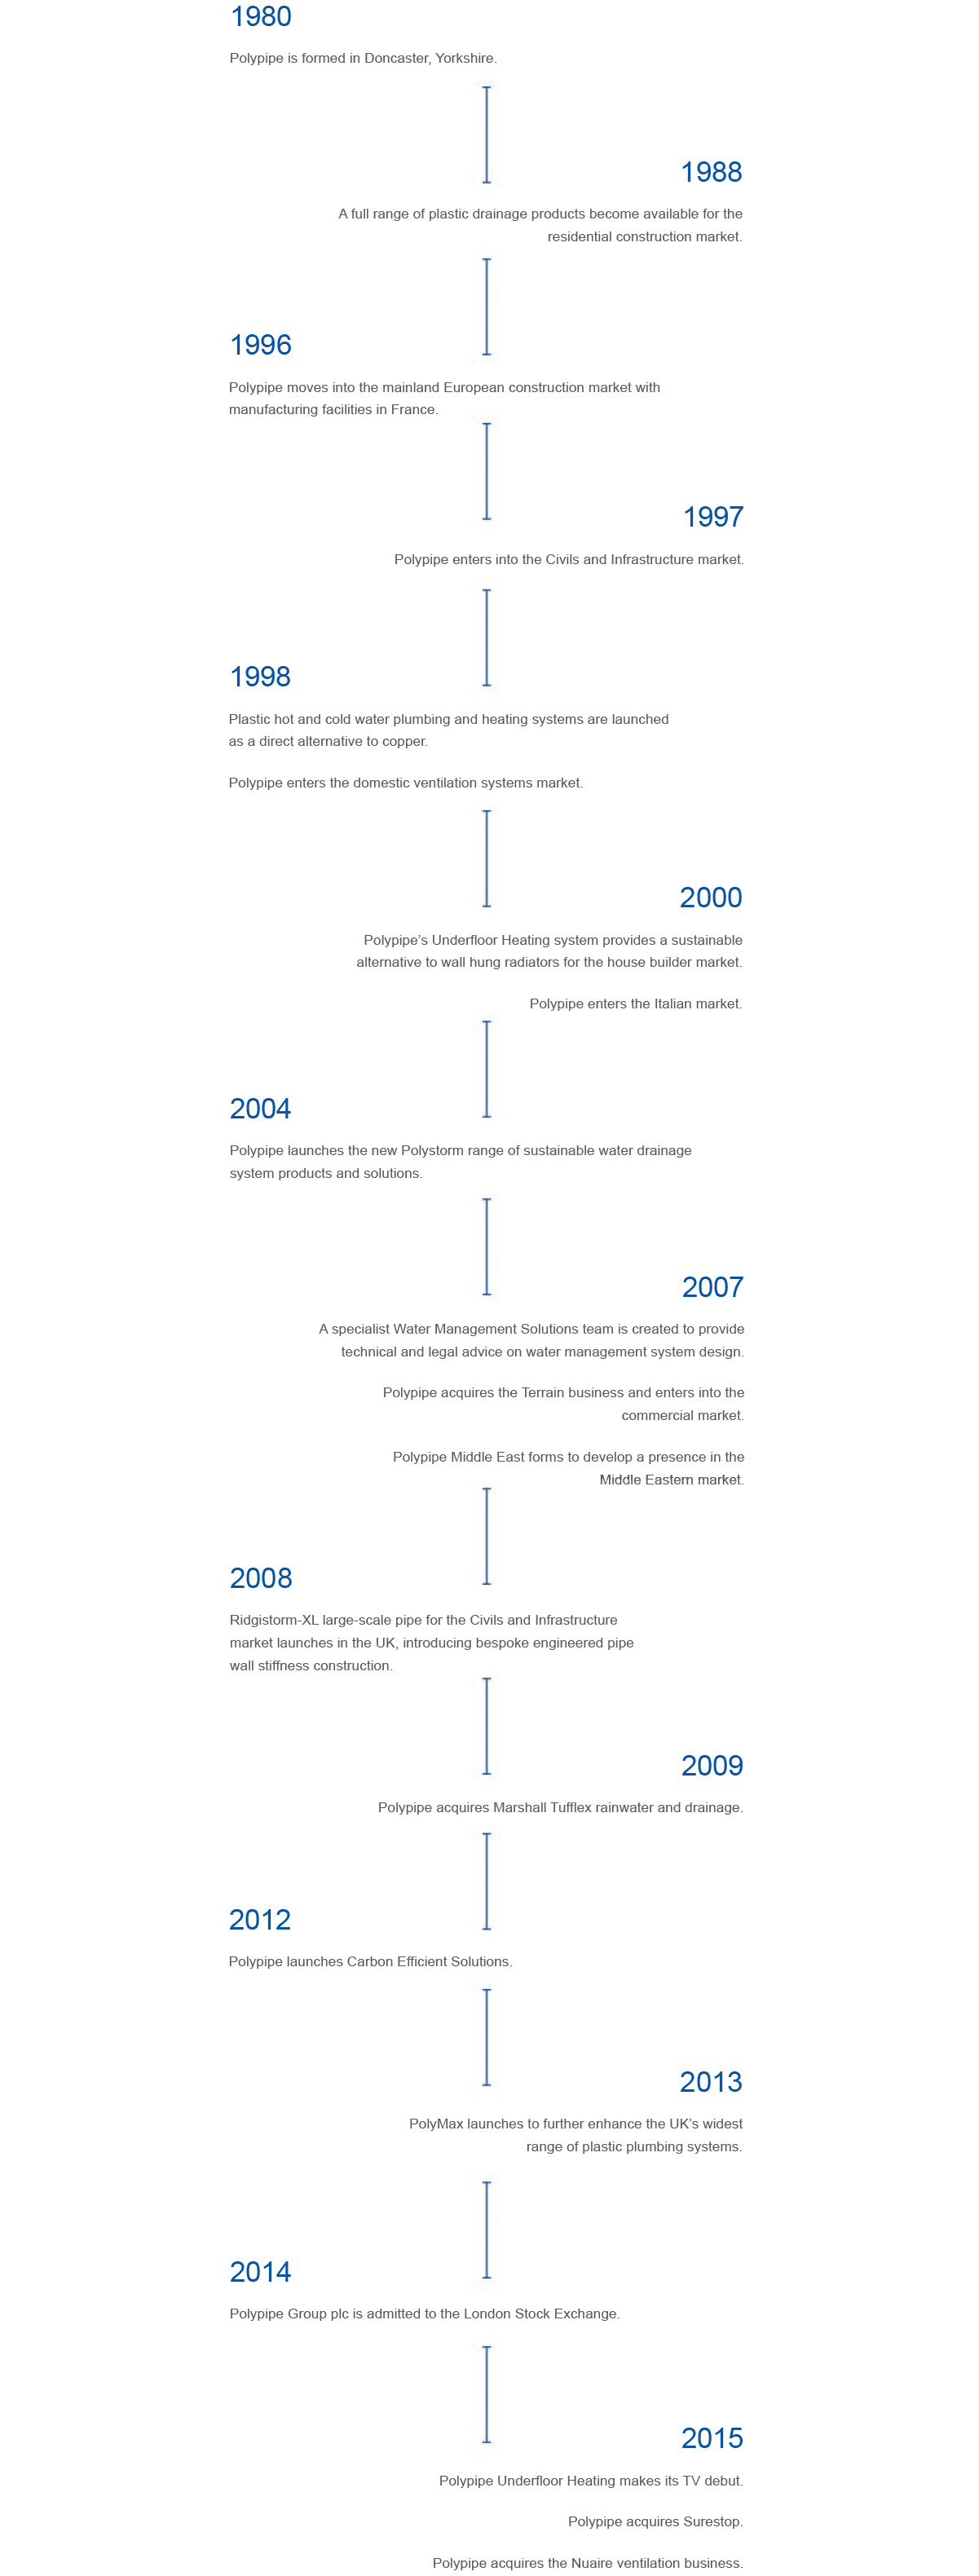 polypipe history at a glance